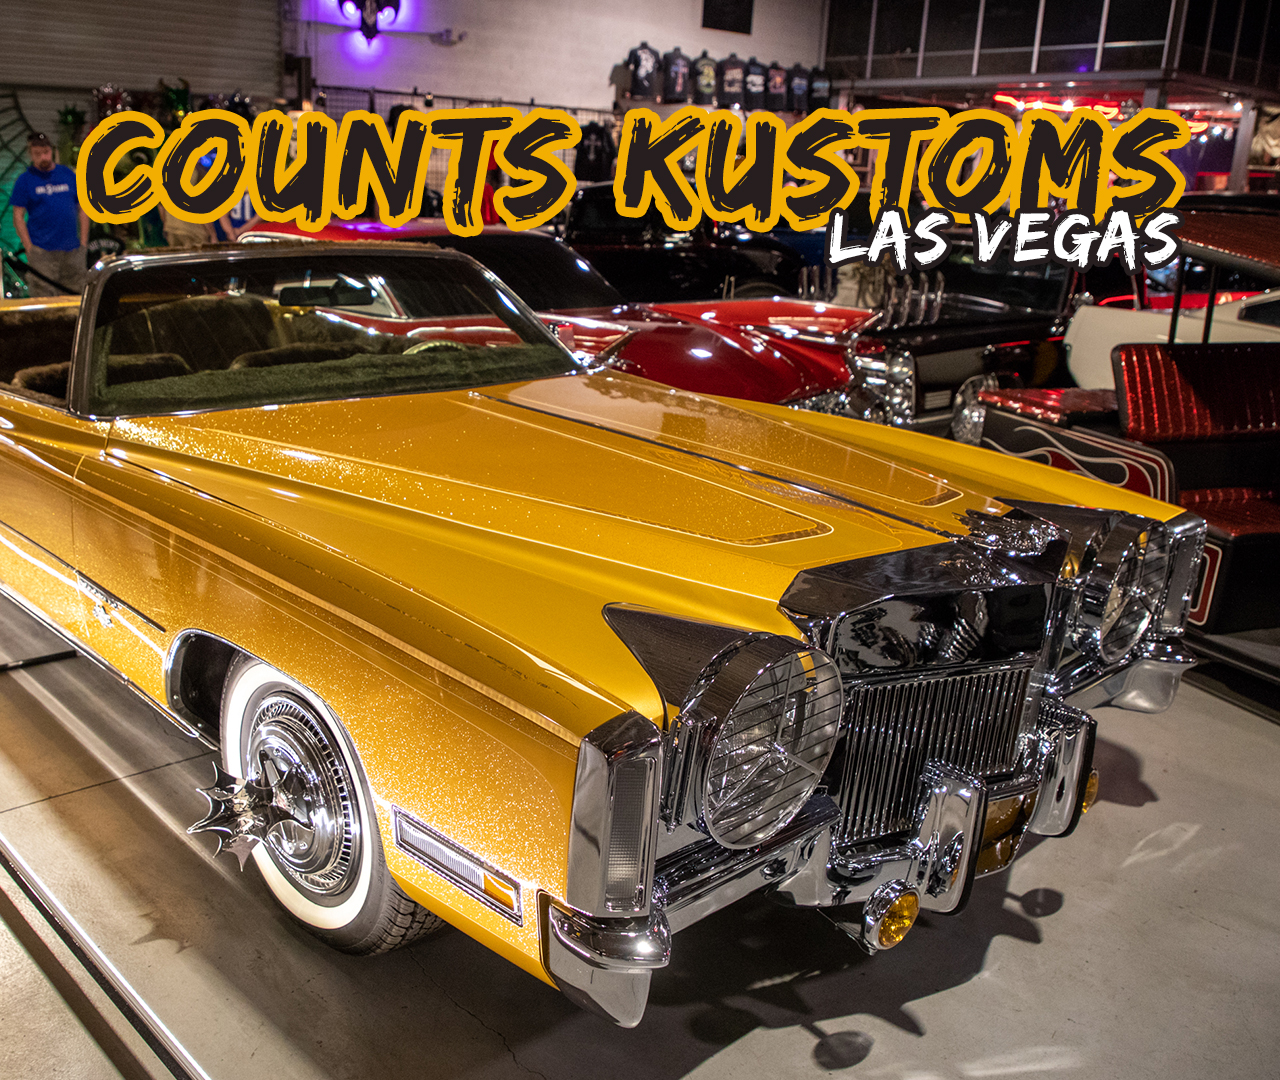 Count's Kustoms Las Vegas - Caddy Daddy Presents